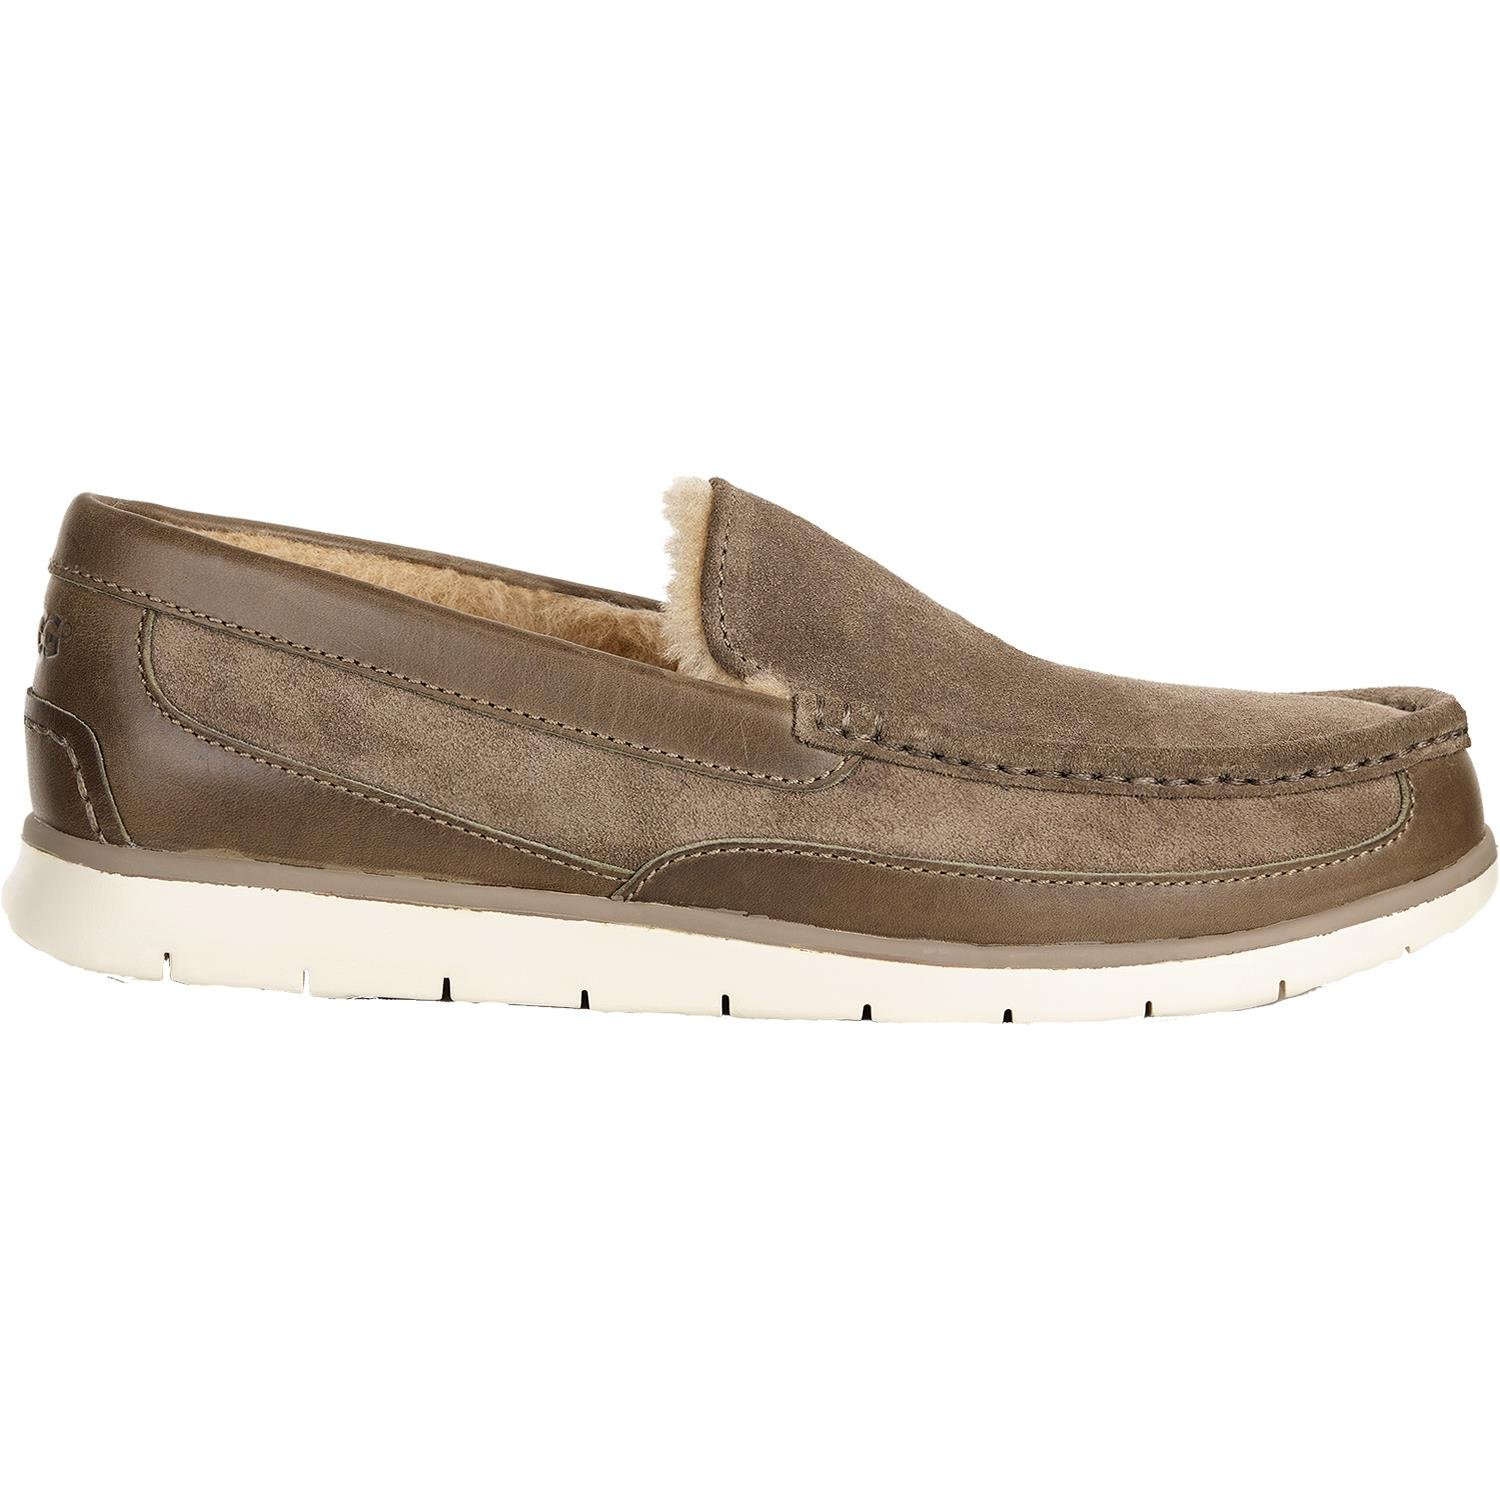 UGG Mens Fascot Slipper Dark Fawn Size 11.5 by UGG (Image #1)